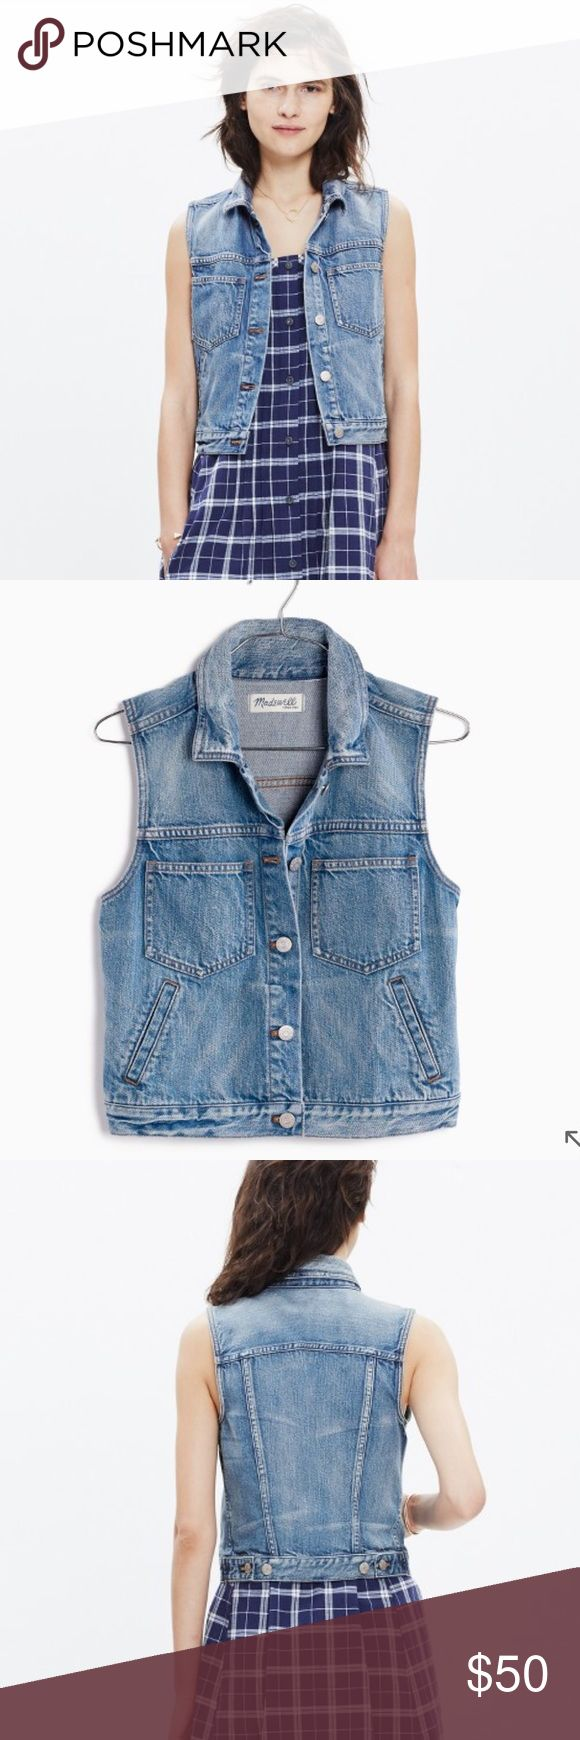 🆕 Madewell Denim Vest Like new! Worn once for a couple hours. Perfect layering item to elevate your outfit. Madewell Jackets & Coats Vests